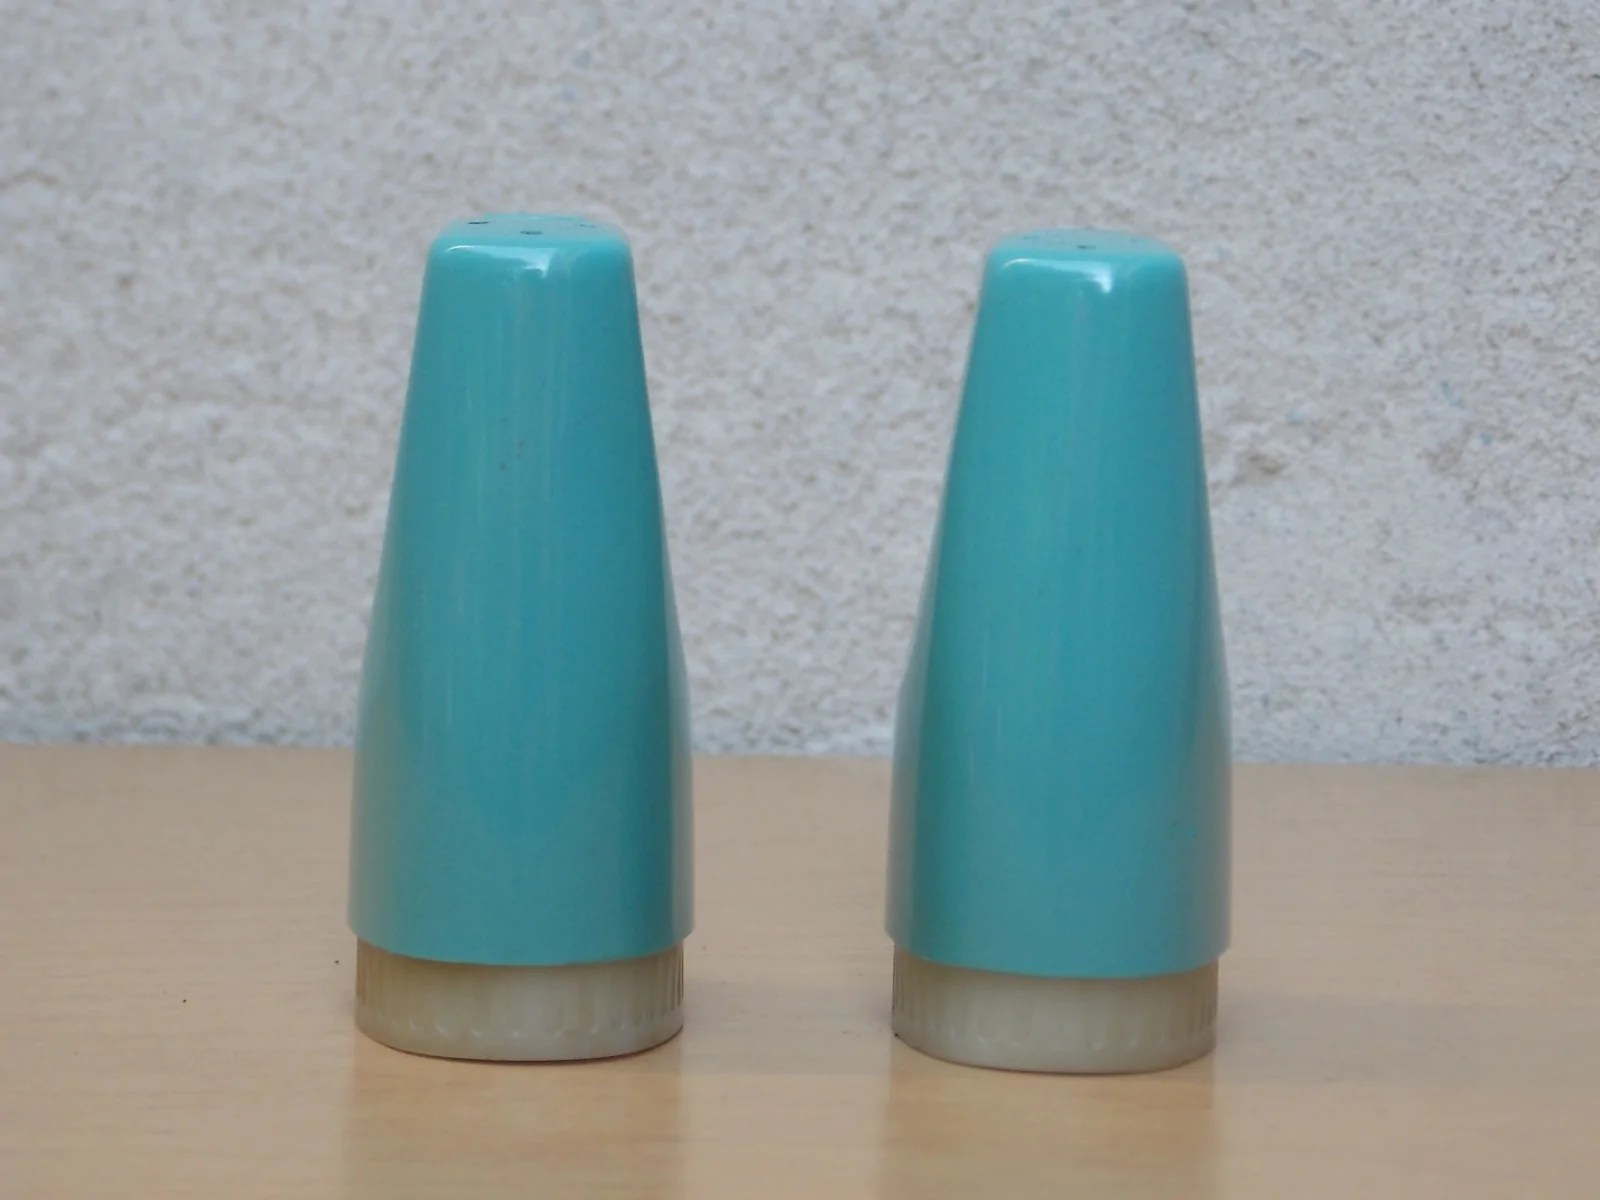 Modern Salt Pepper Shakers Aqua Blue Teal Vintage Modern Salt Pepper Shakers